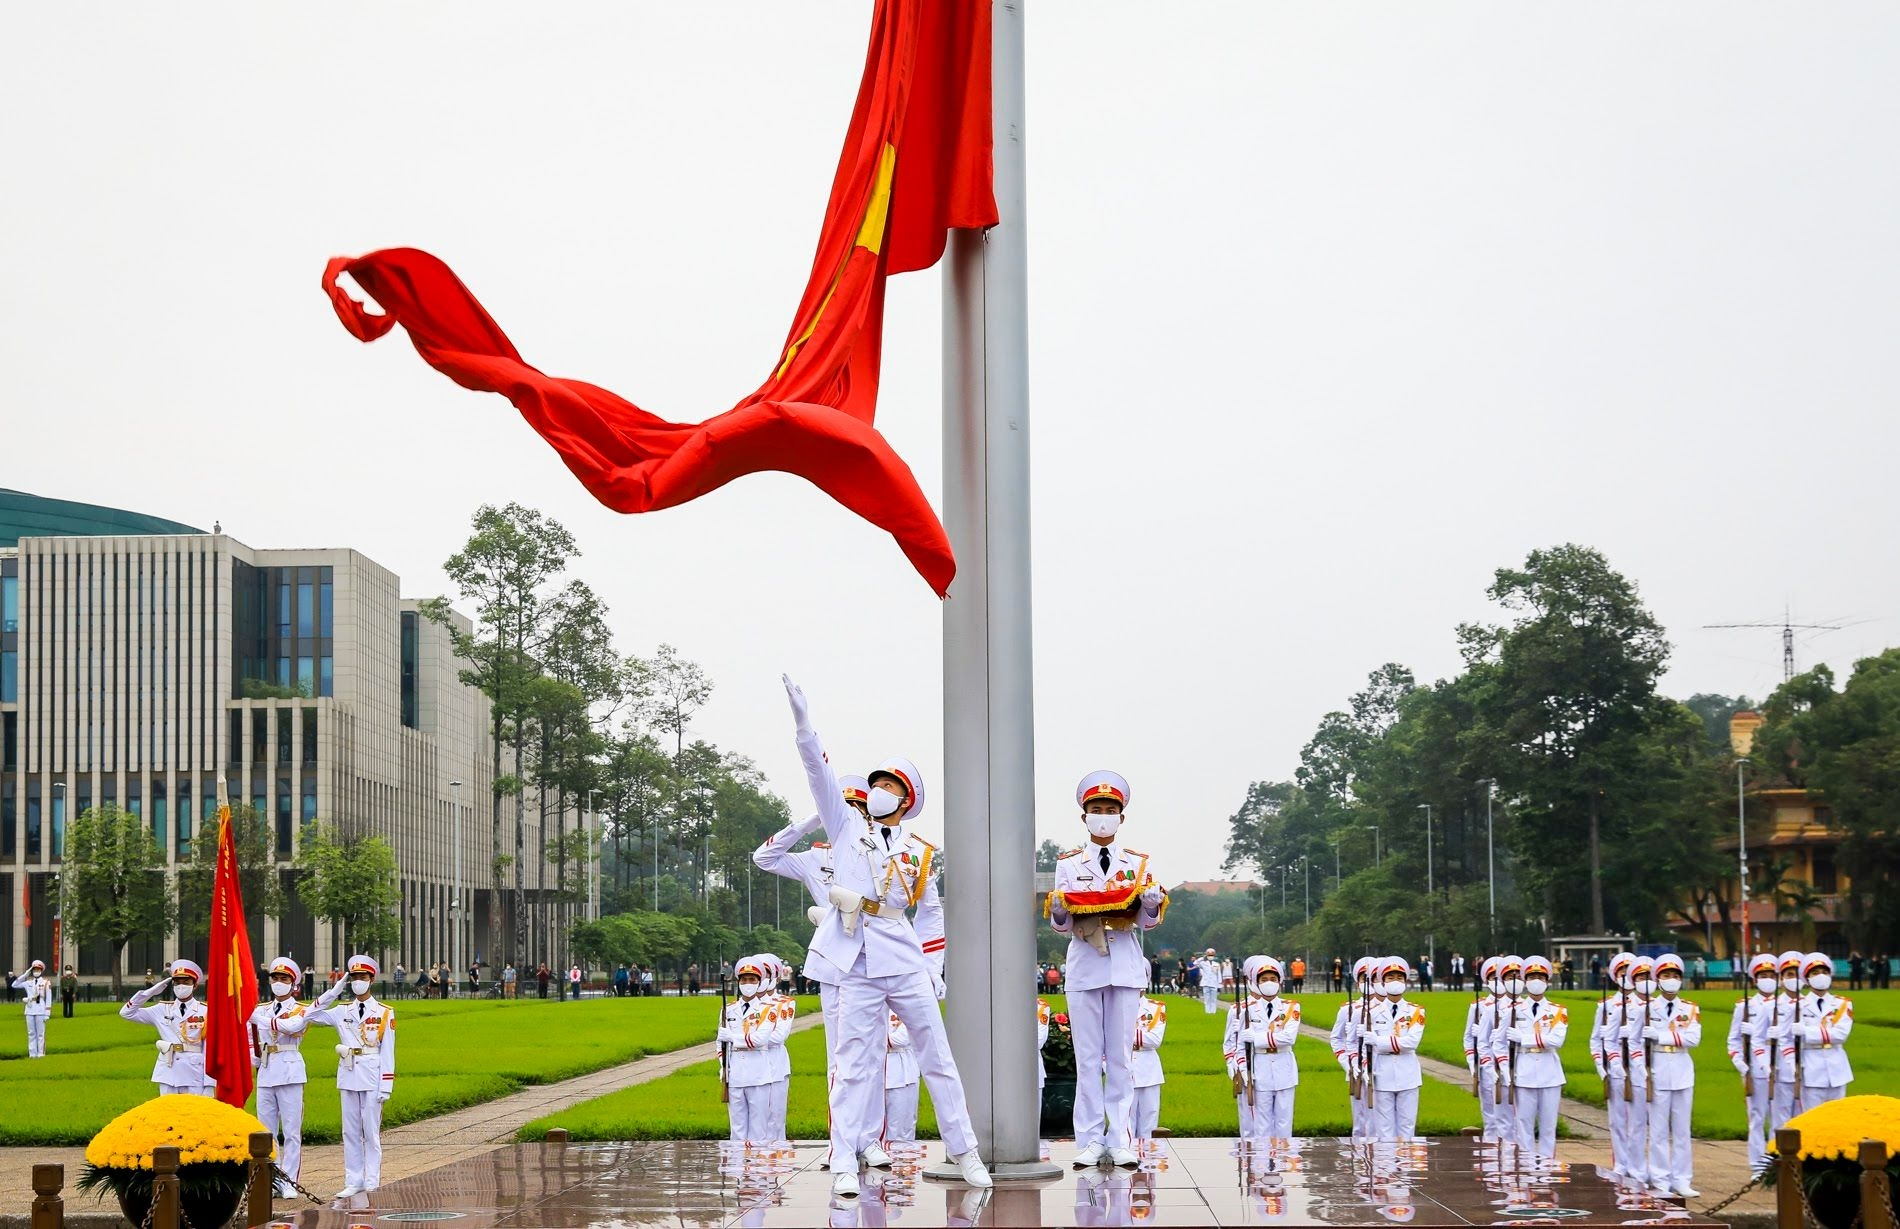 russia laos offer congratulations to vietnam on national reunification day